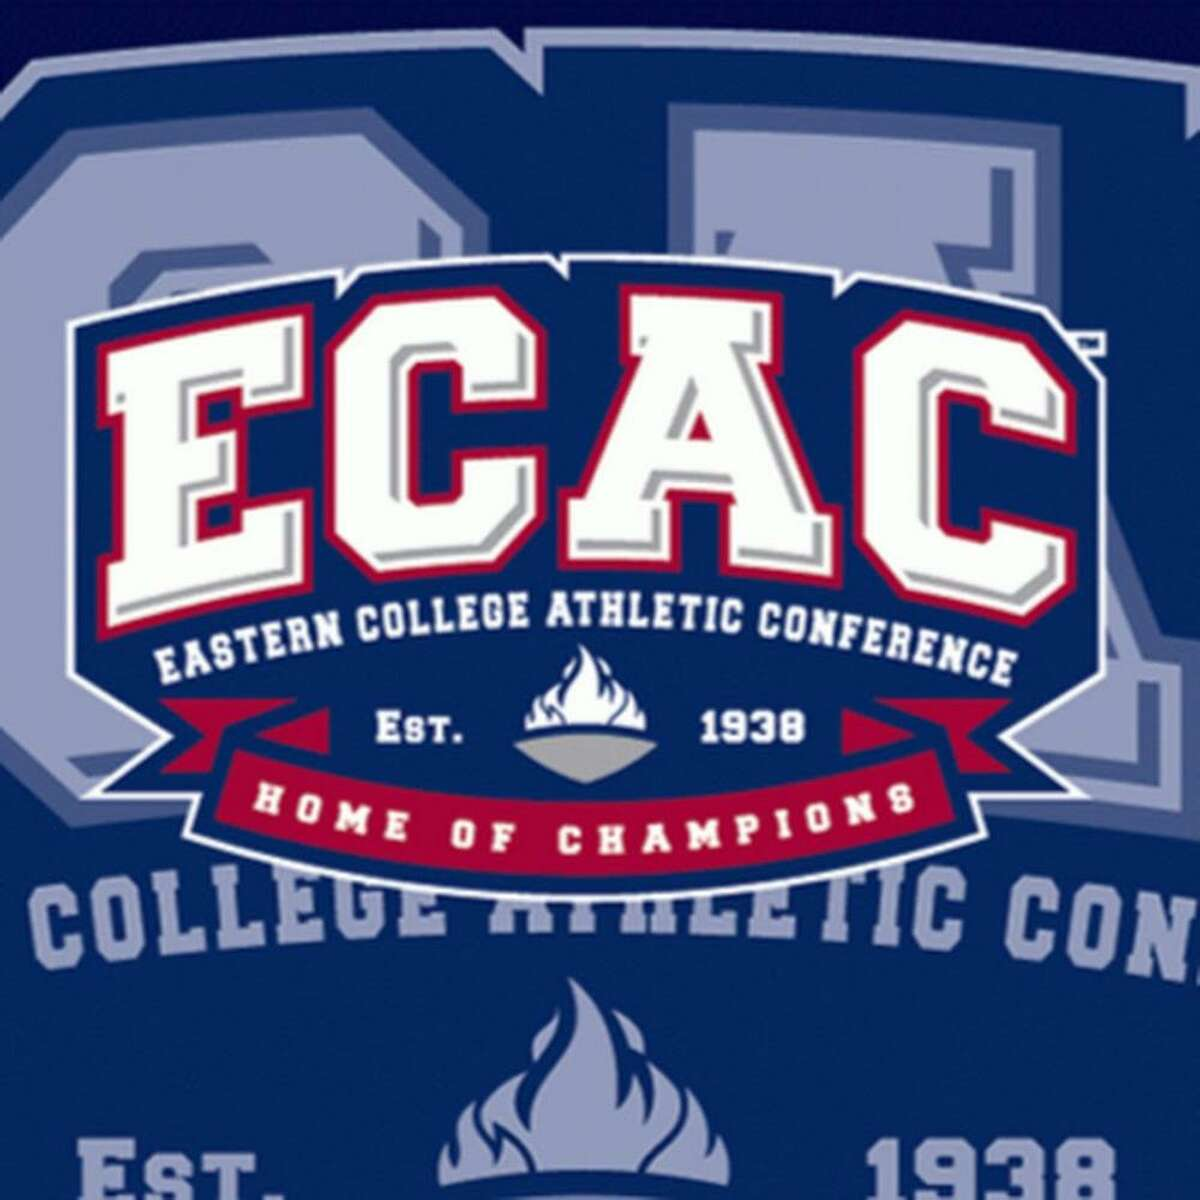 Eastern College Athletic Association